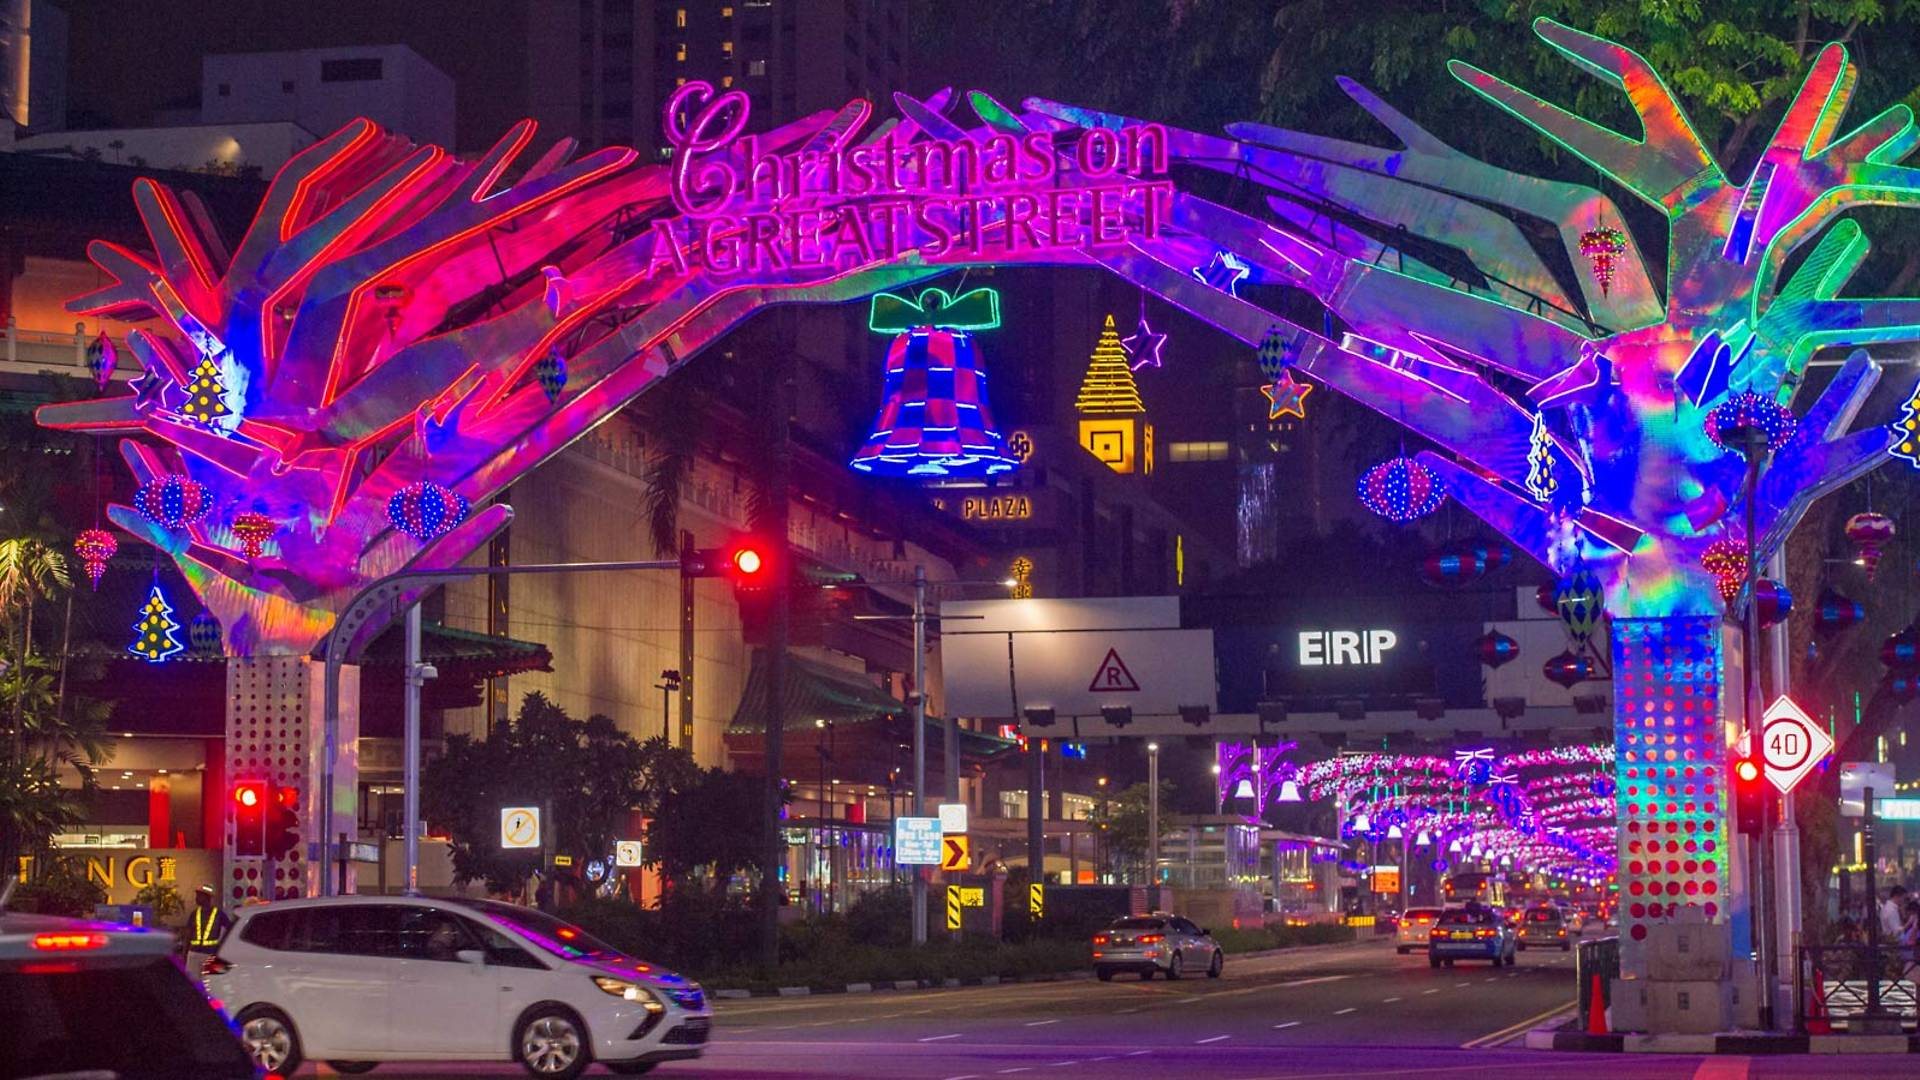 The Orchard Road Christmas Light Up